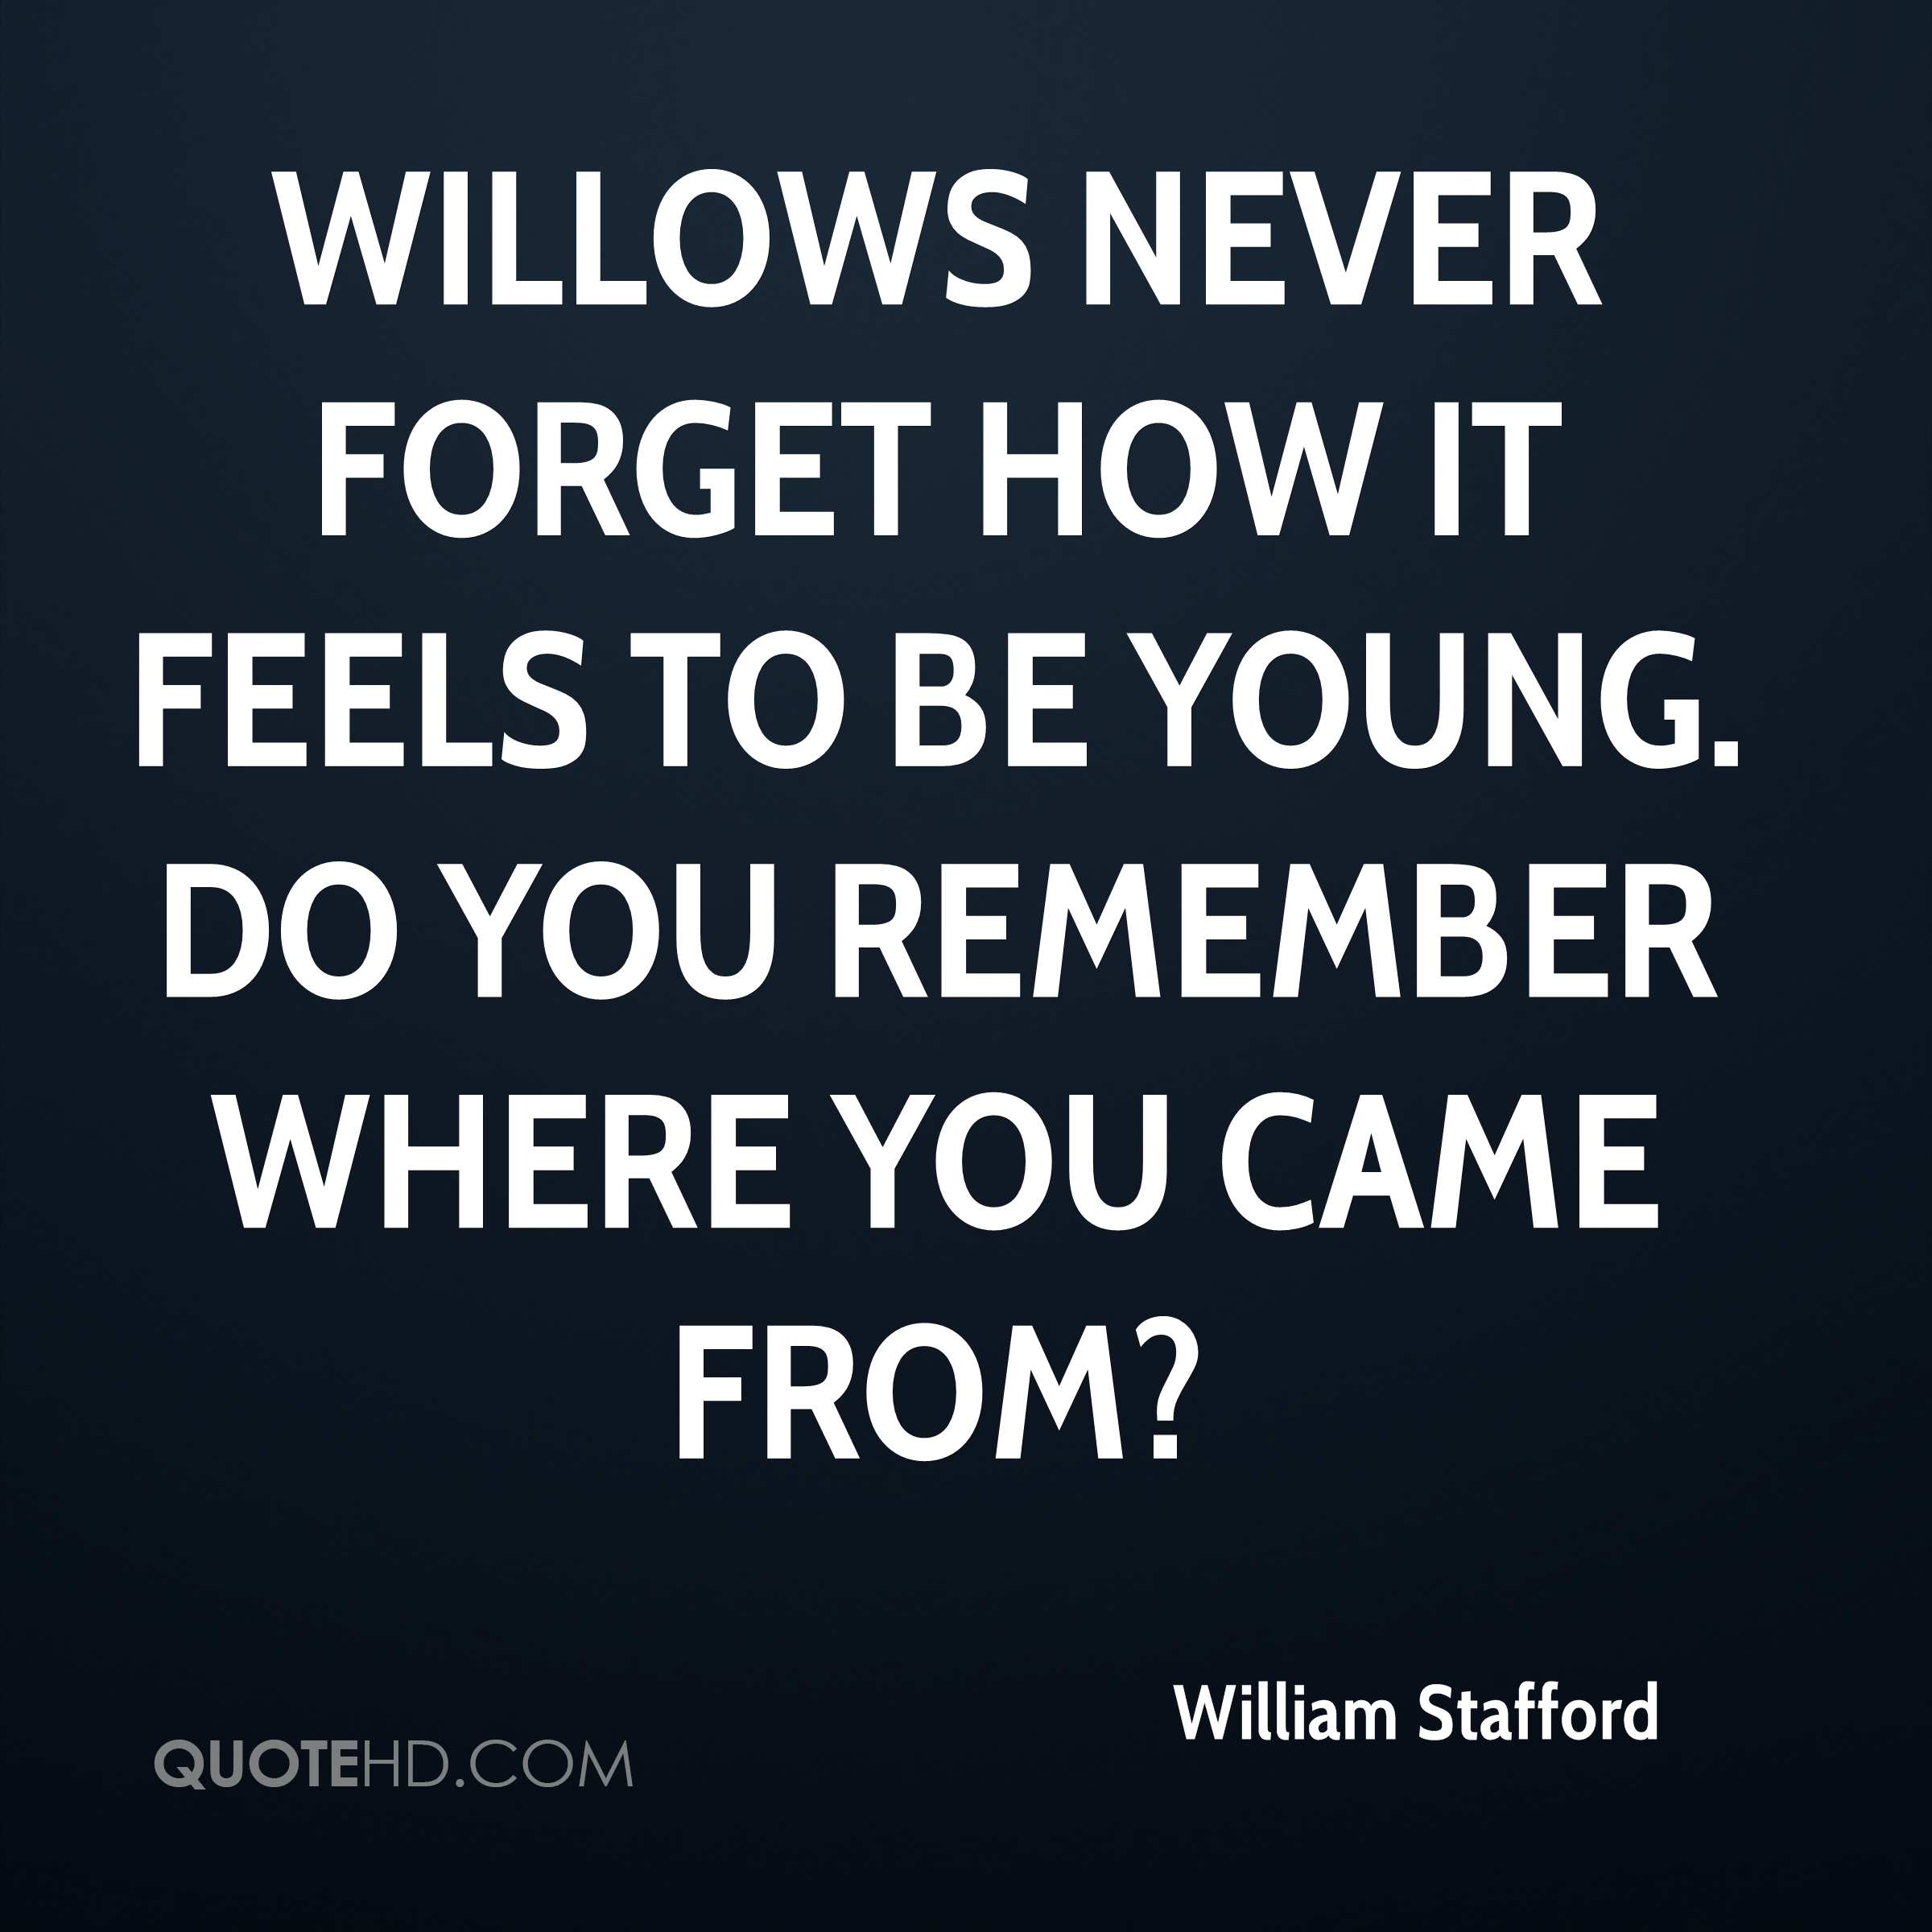 Willows never forget how it feels to be young. Do you remember where you came from?